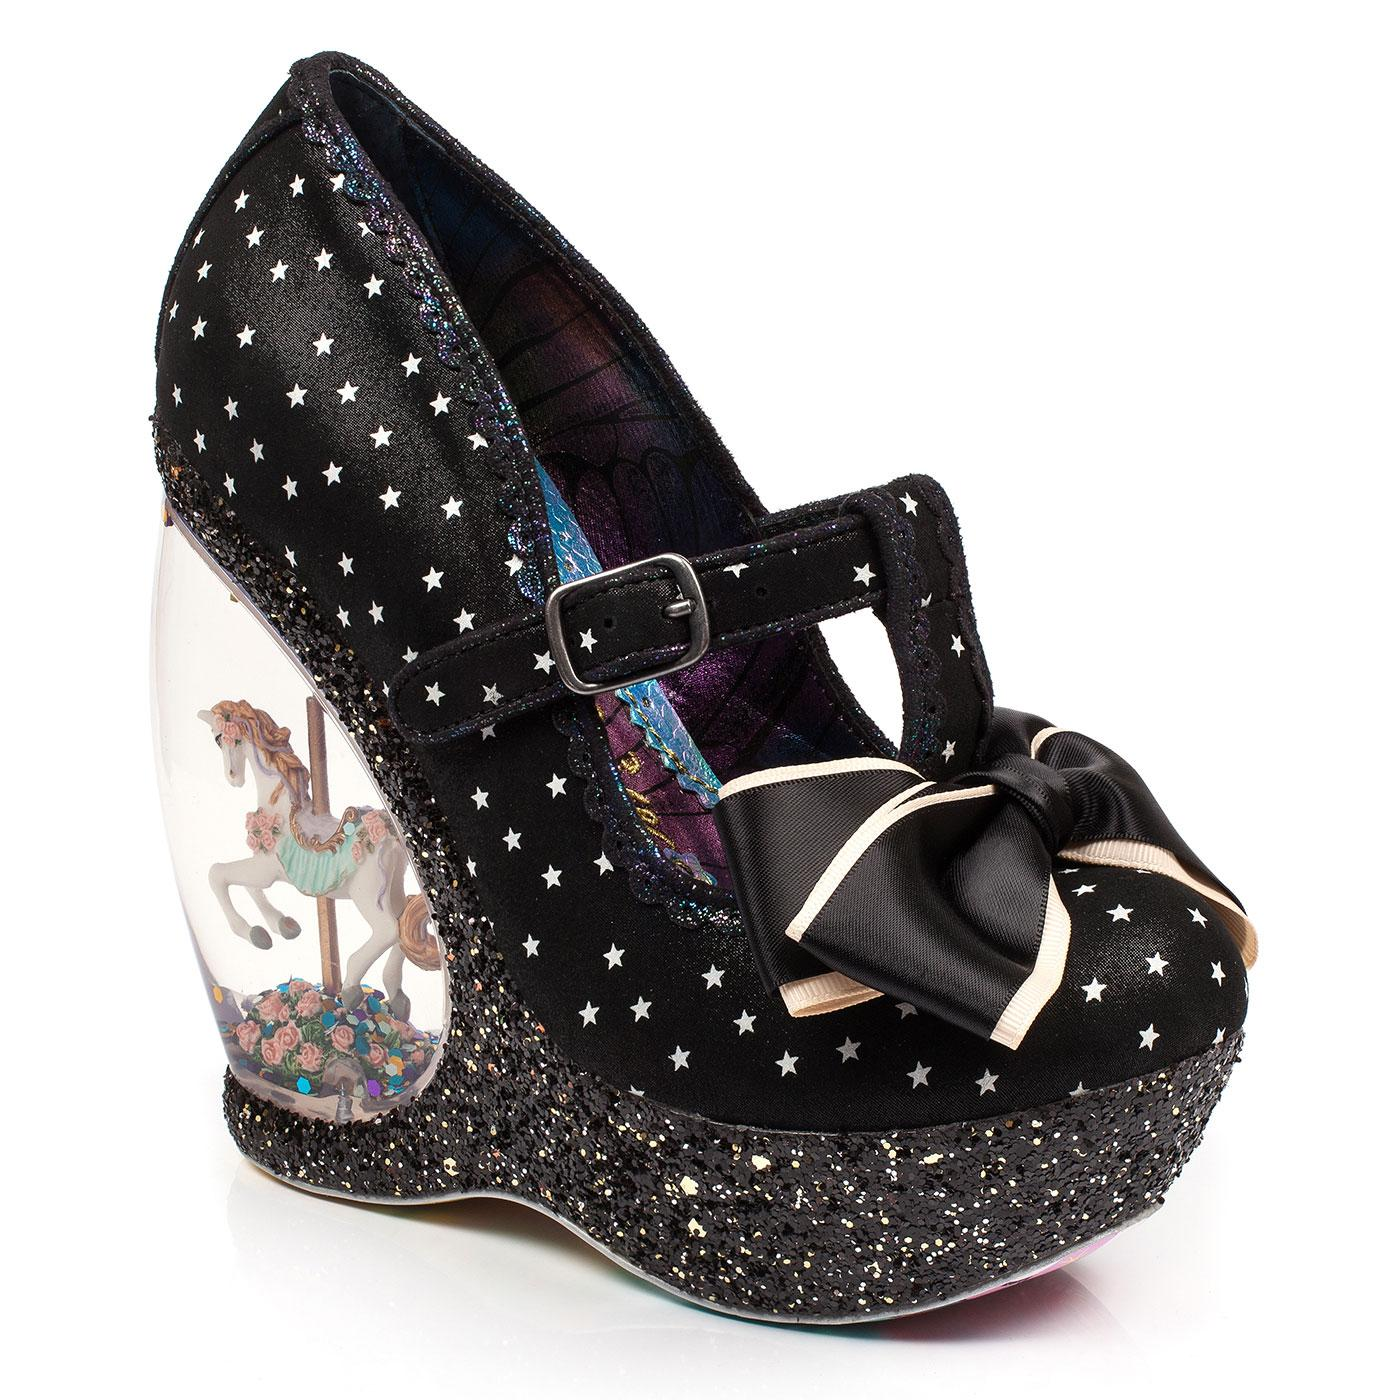 Chestnut IRREGULAR CHOICE Retro Carousel Wedges B